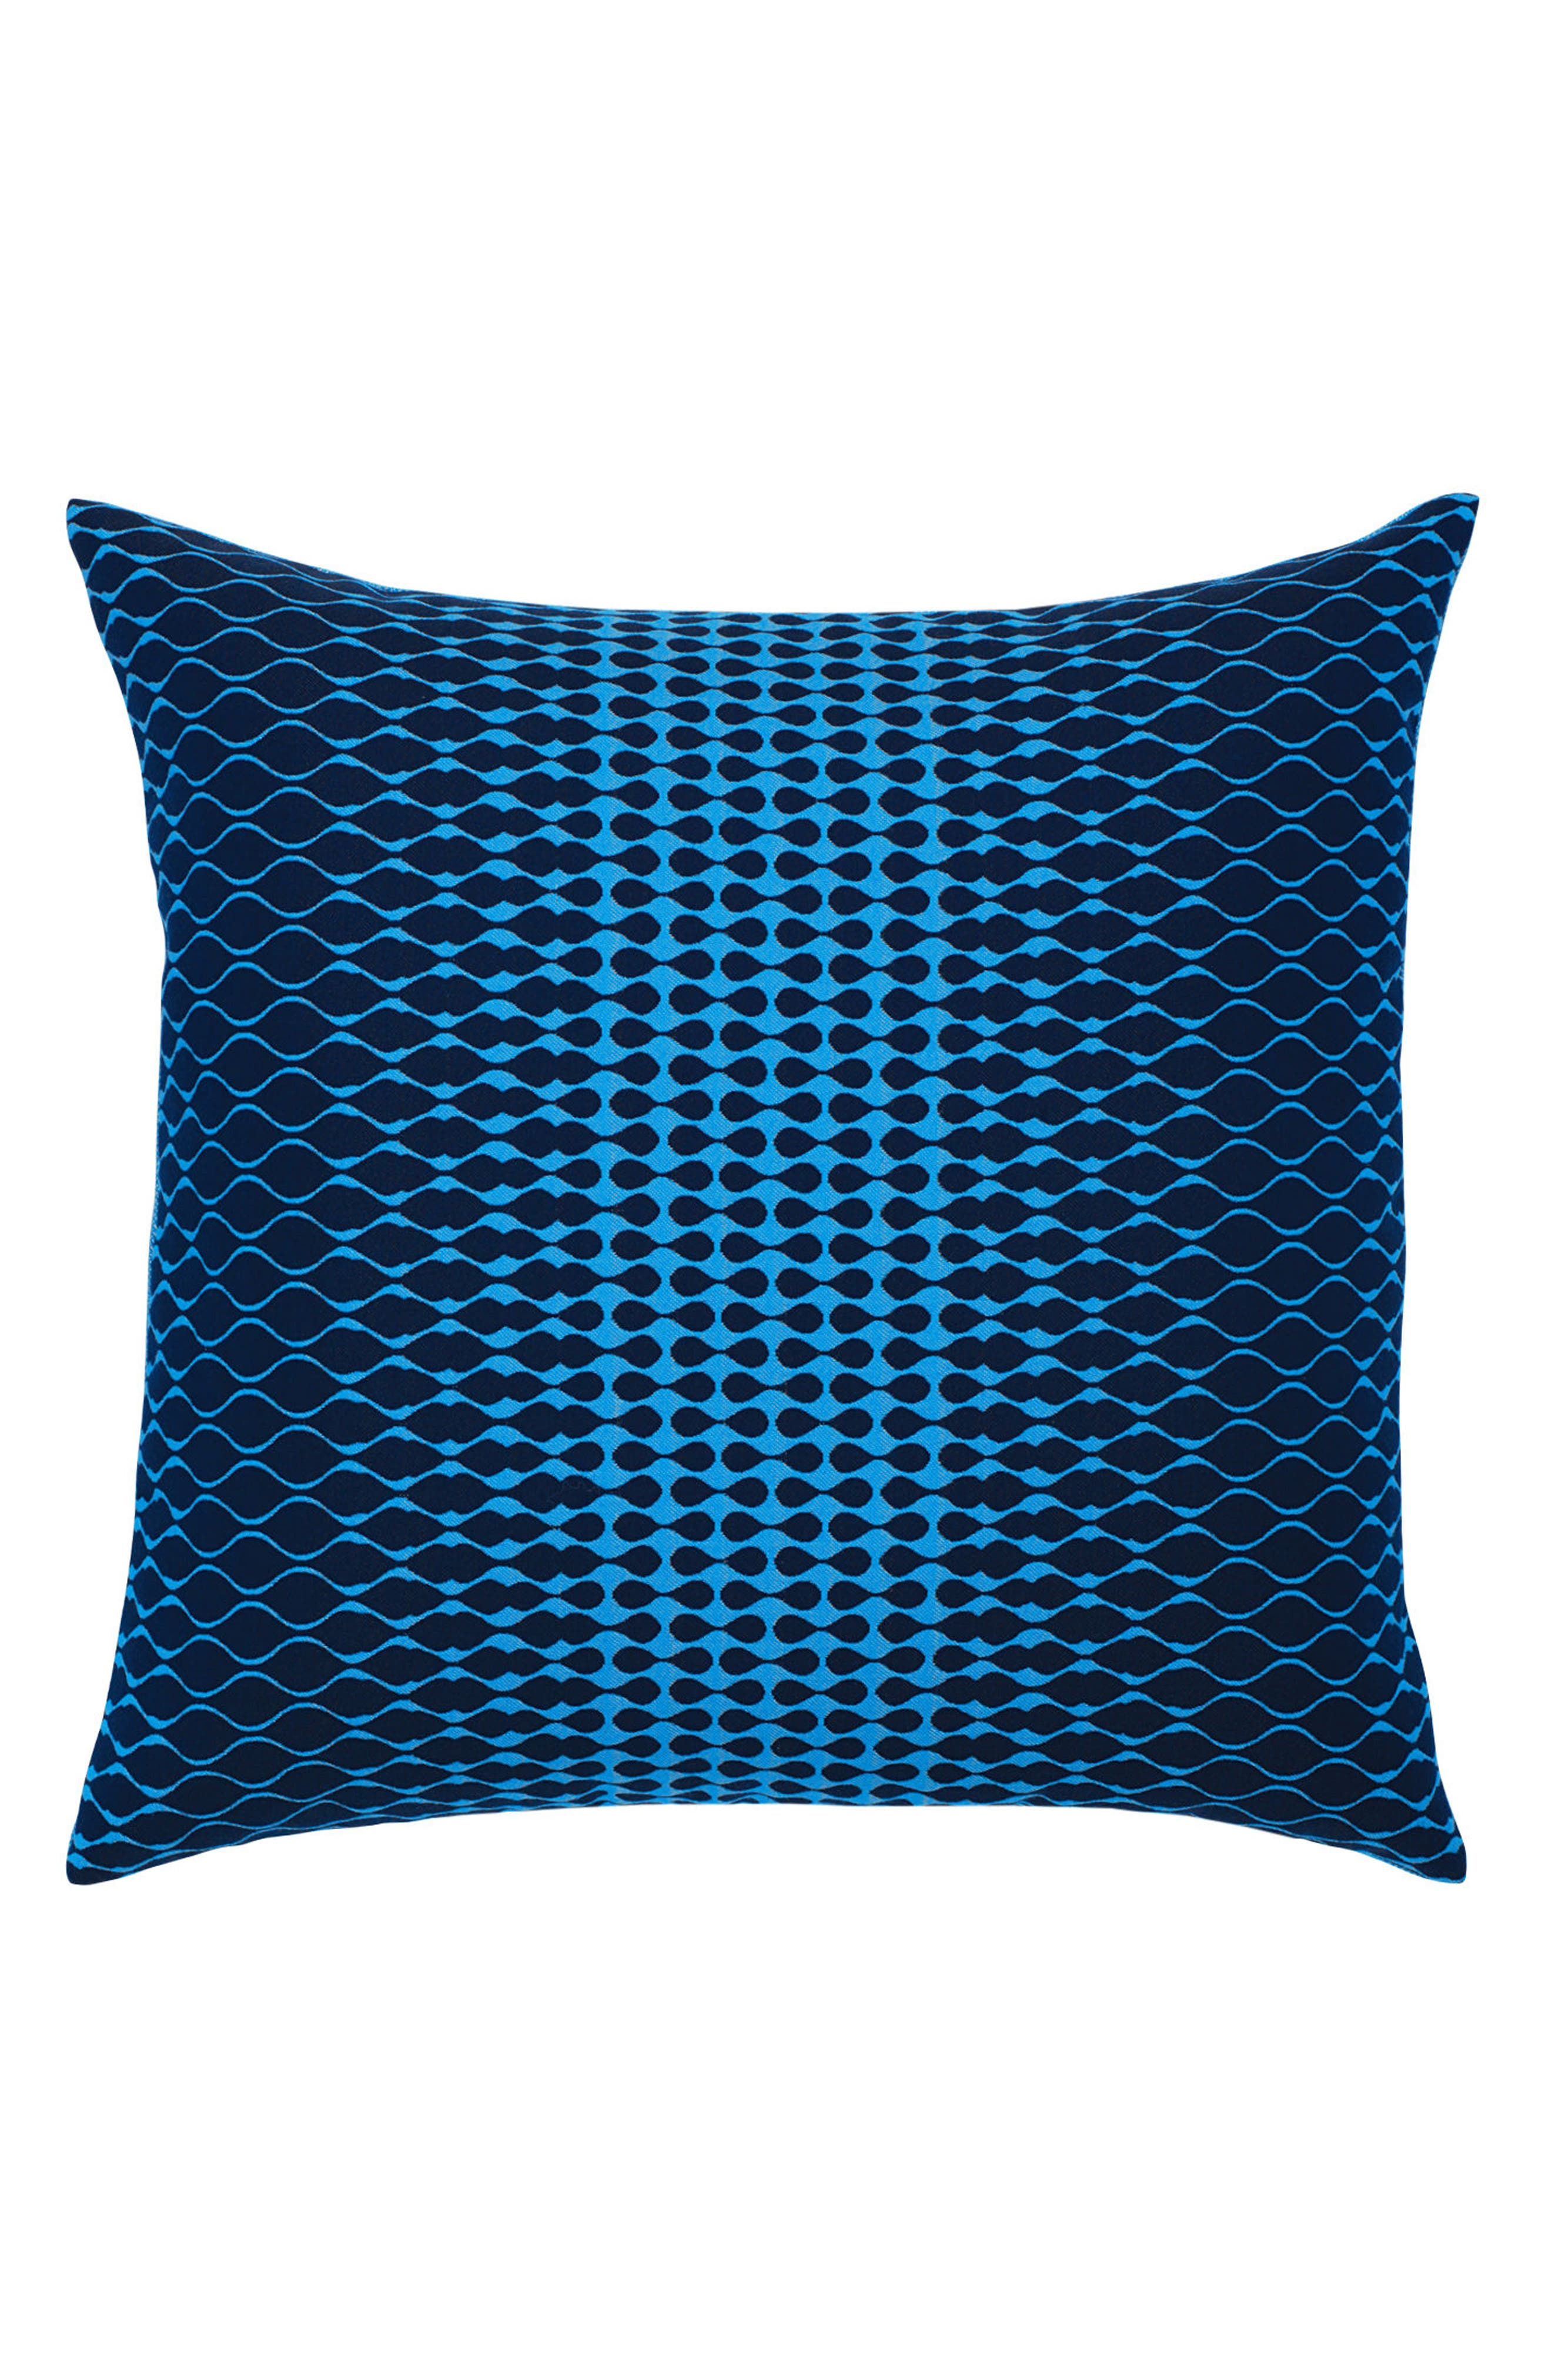 Optic Azure Indoor/Outdoor Accent Pillow,                             Main thumbnail 1, color,                             BLUE